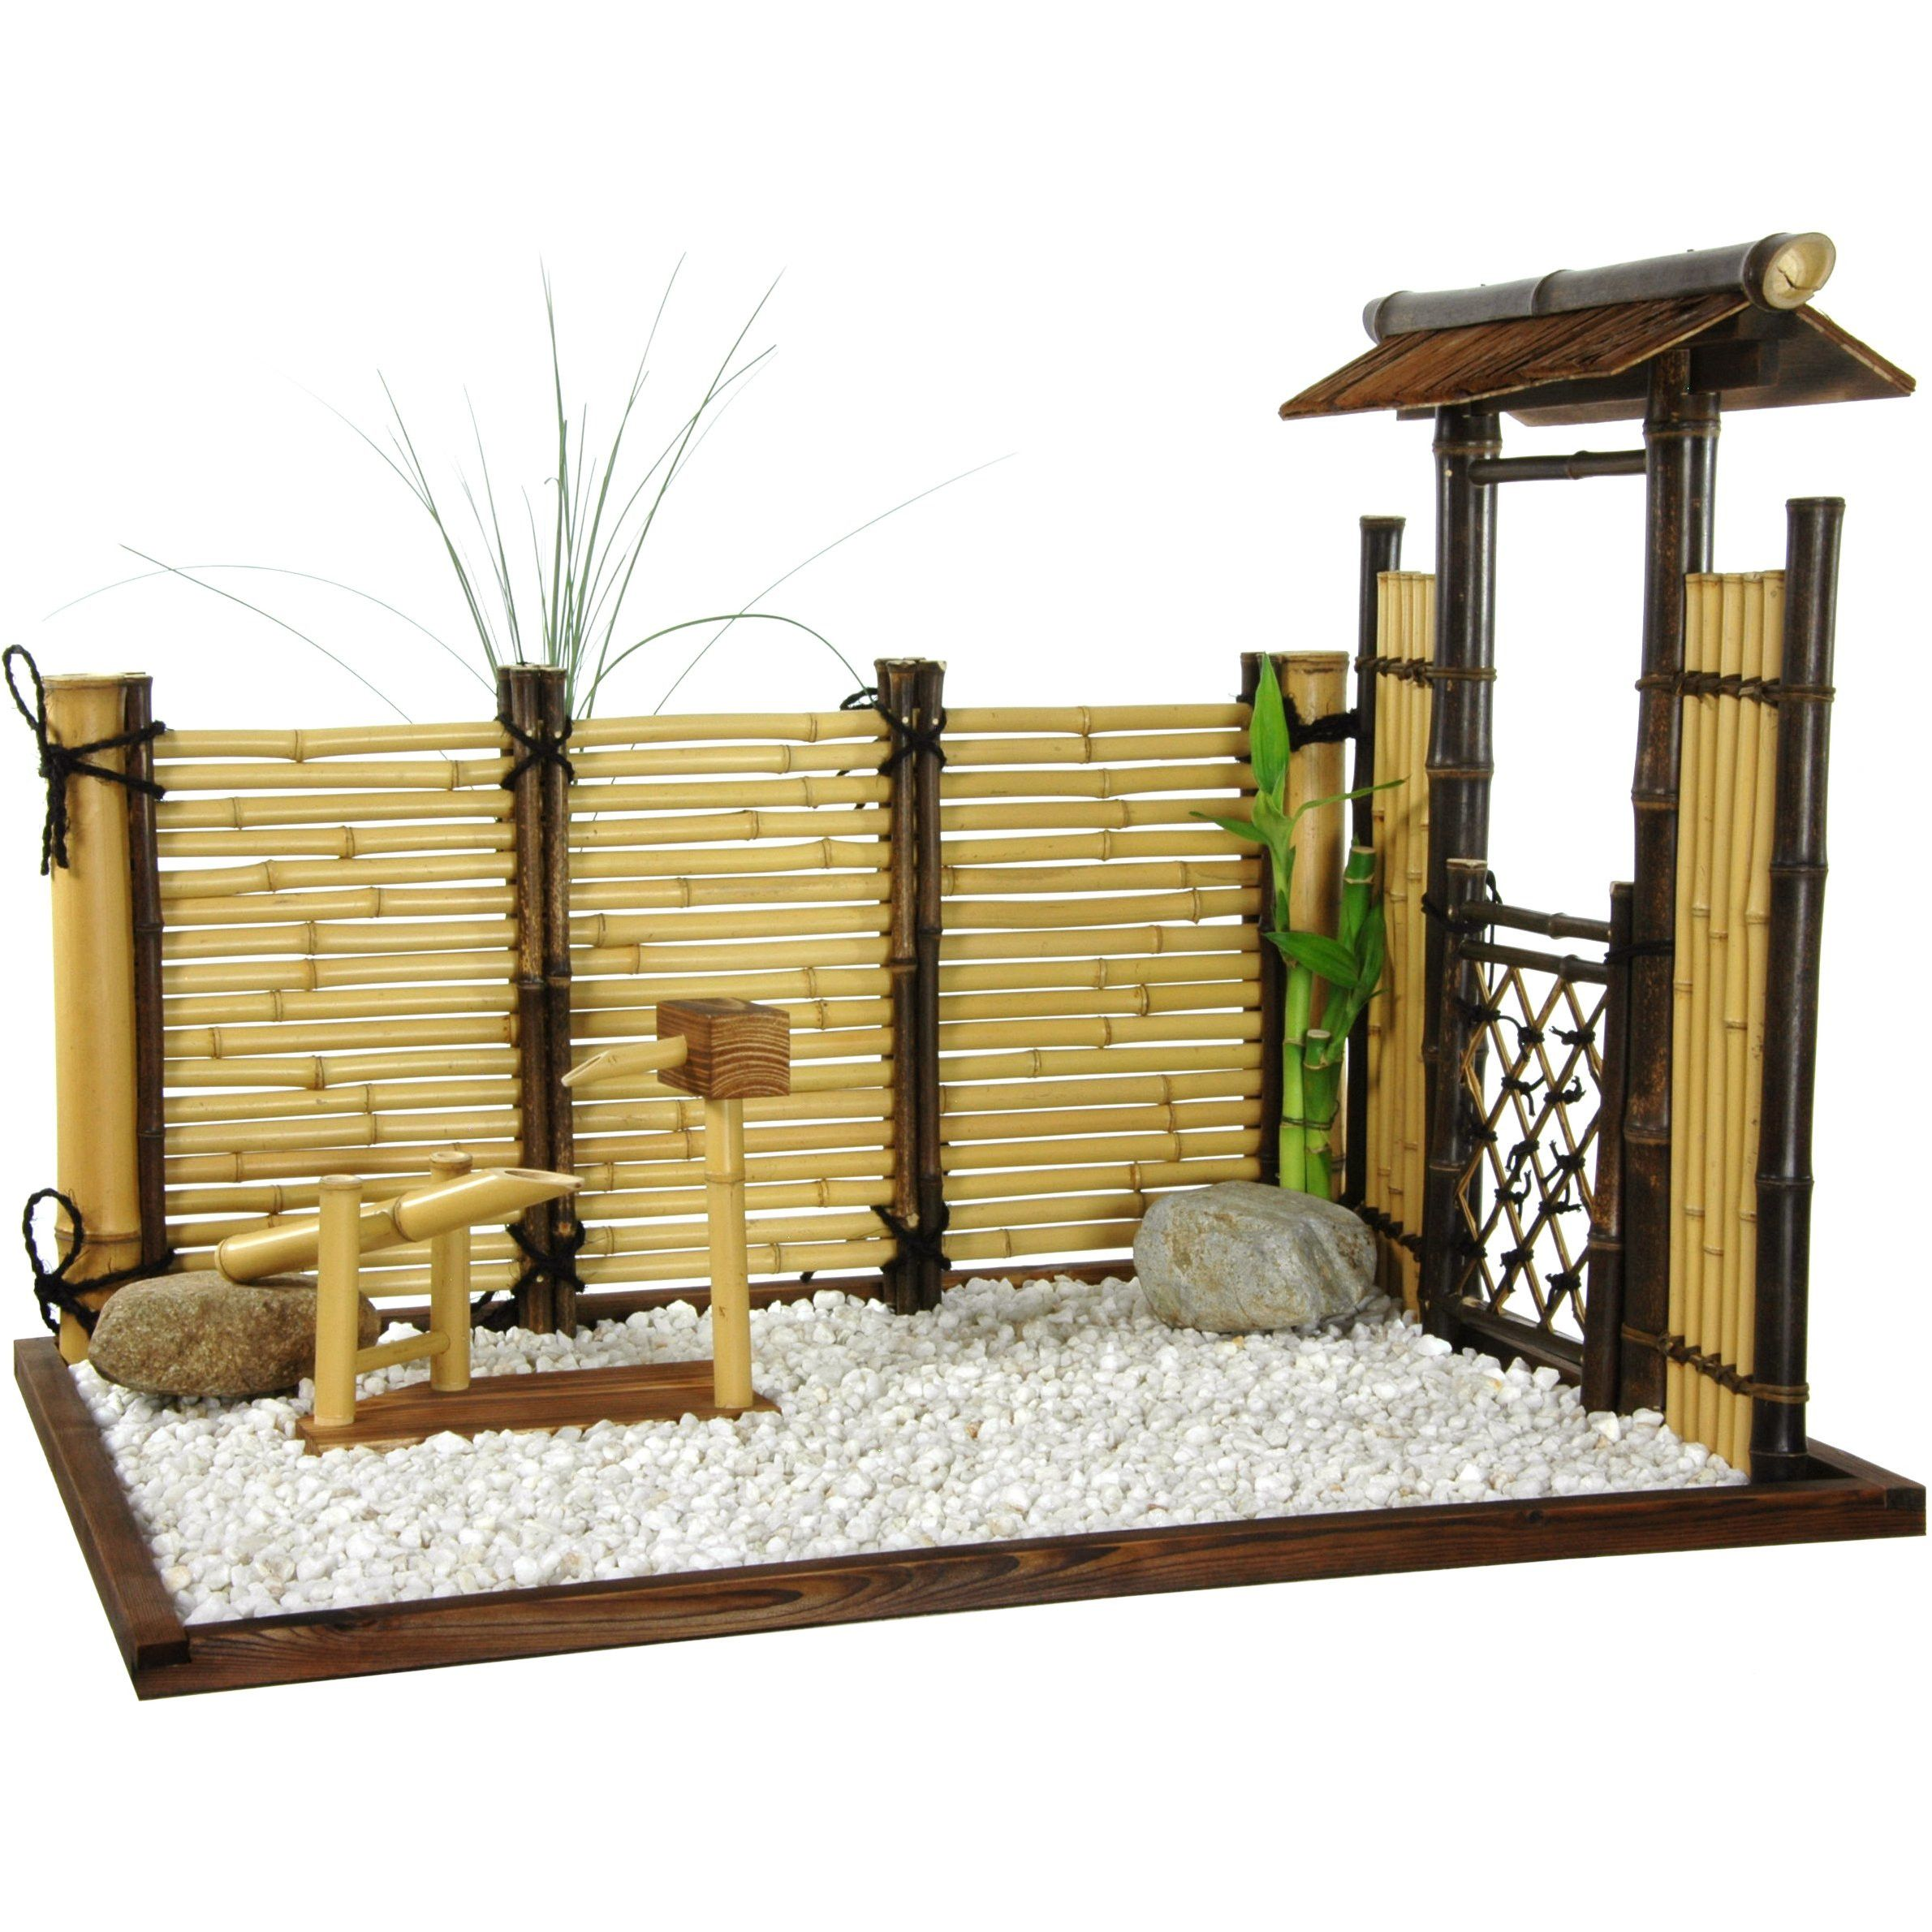 Lab, Birds and Tree Figurine Mini zen garden, Bamboo